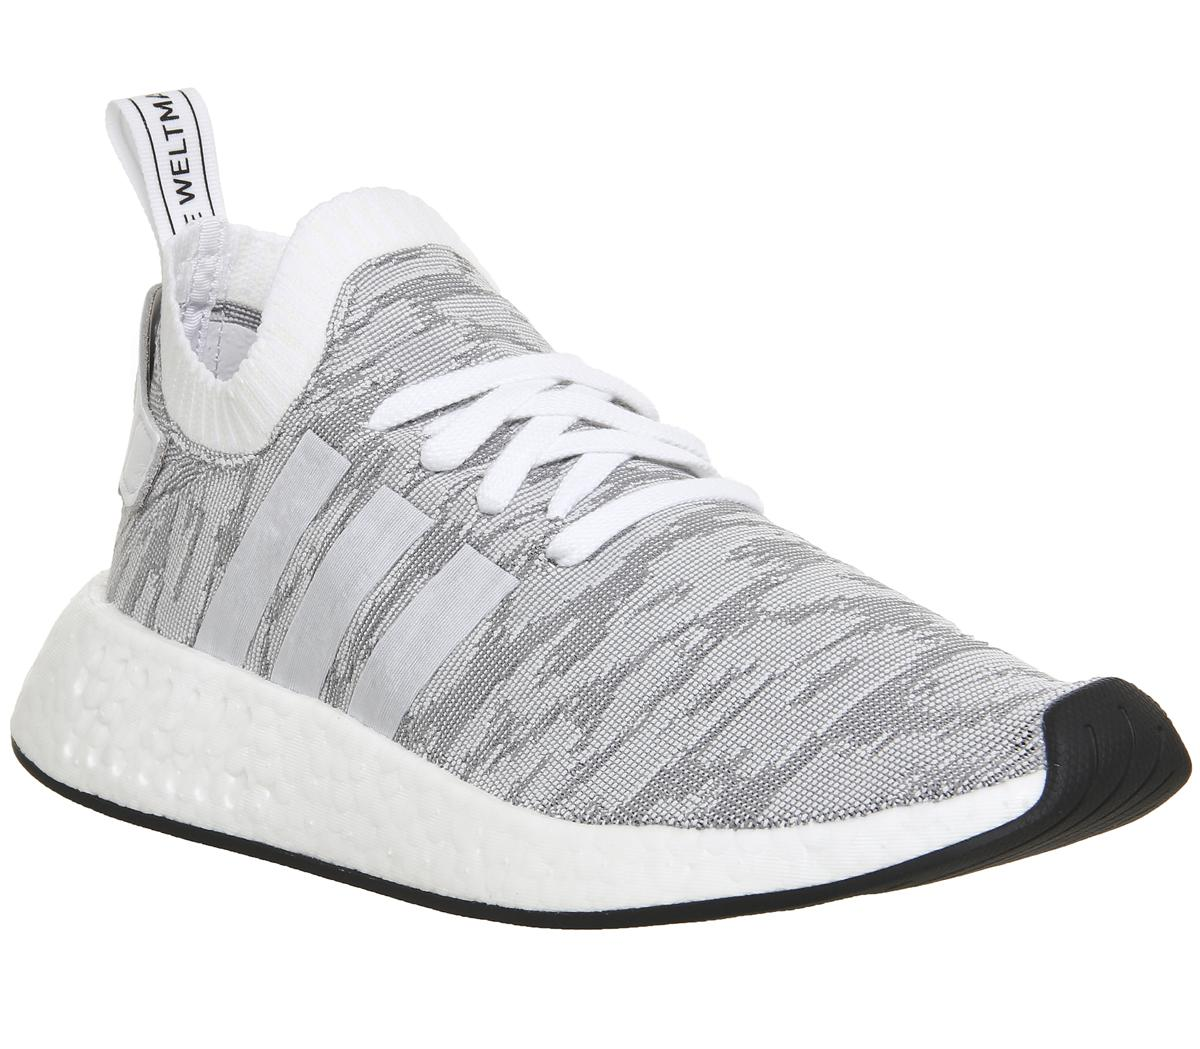 Adidas Nmd R2 Pk White Black Red His Trainers